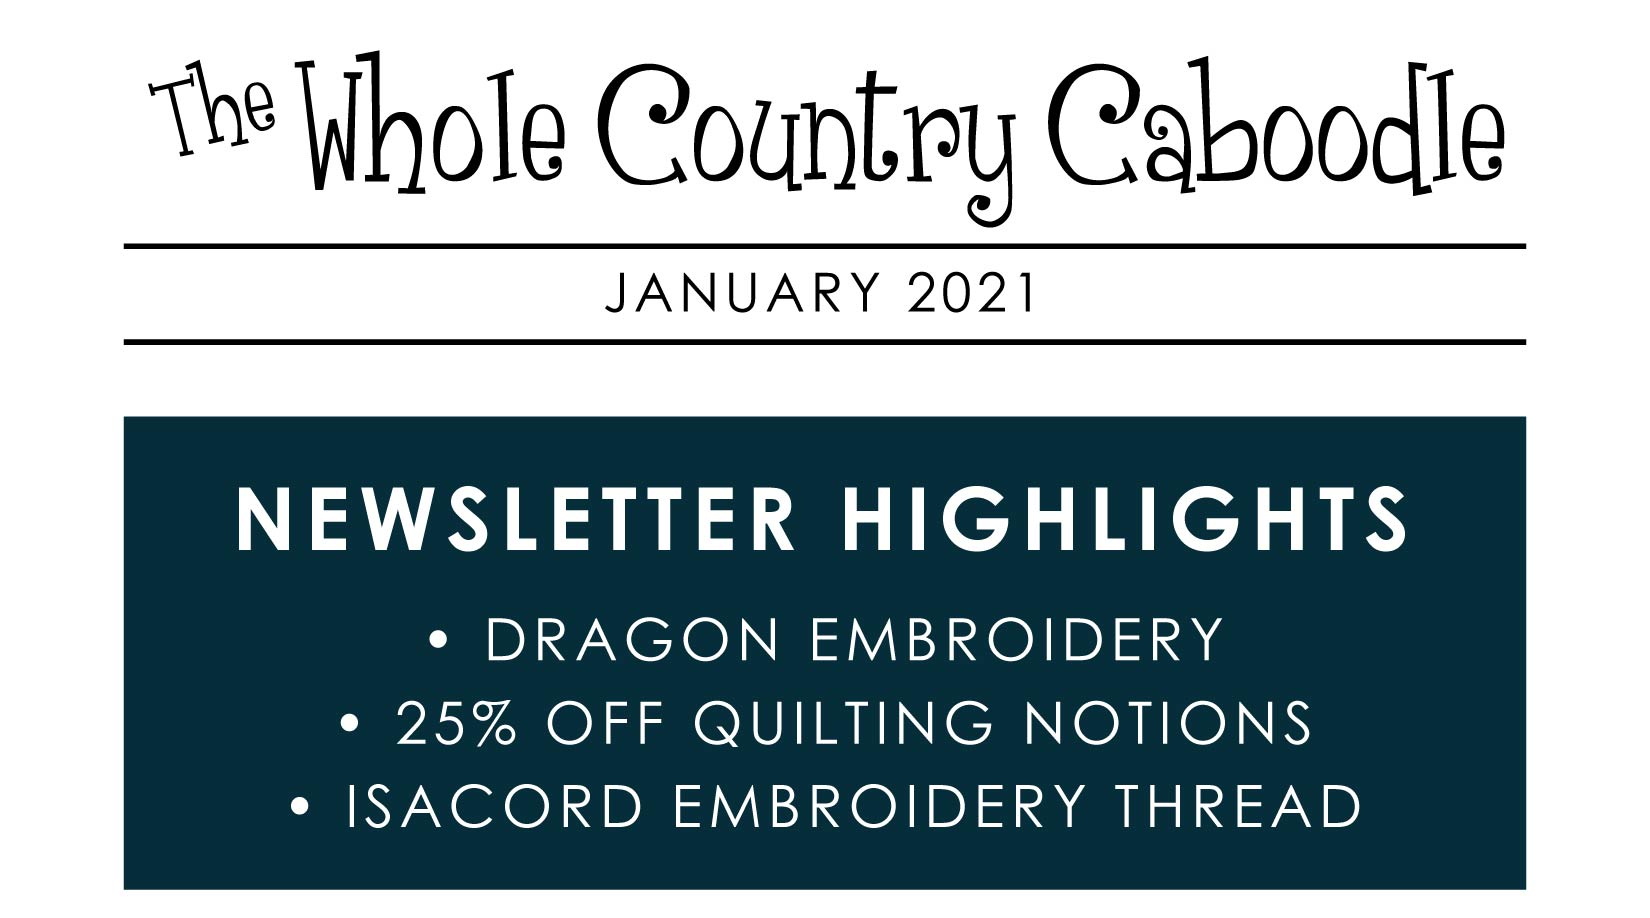 Dragon Embroidery is here + 25% OFF Quilting Notions!